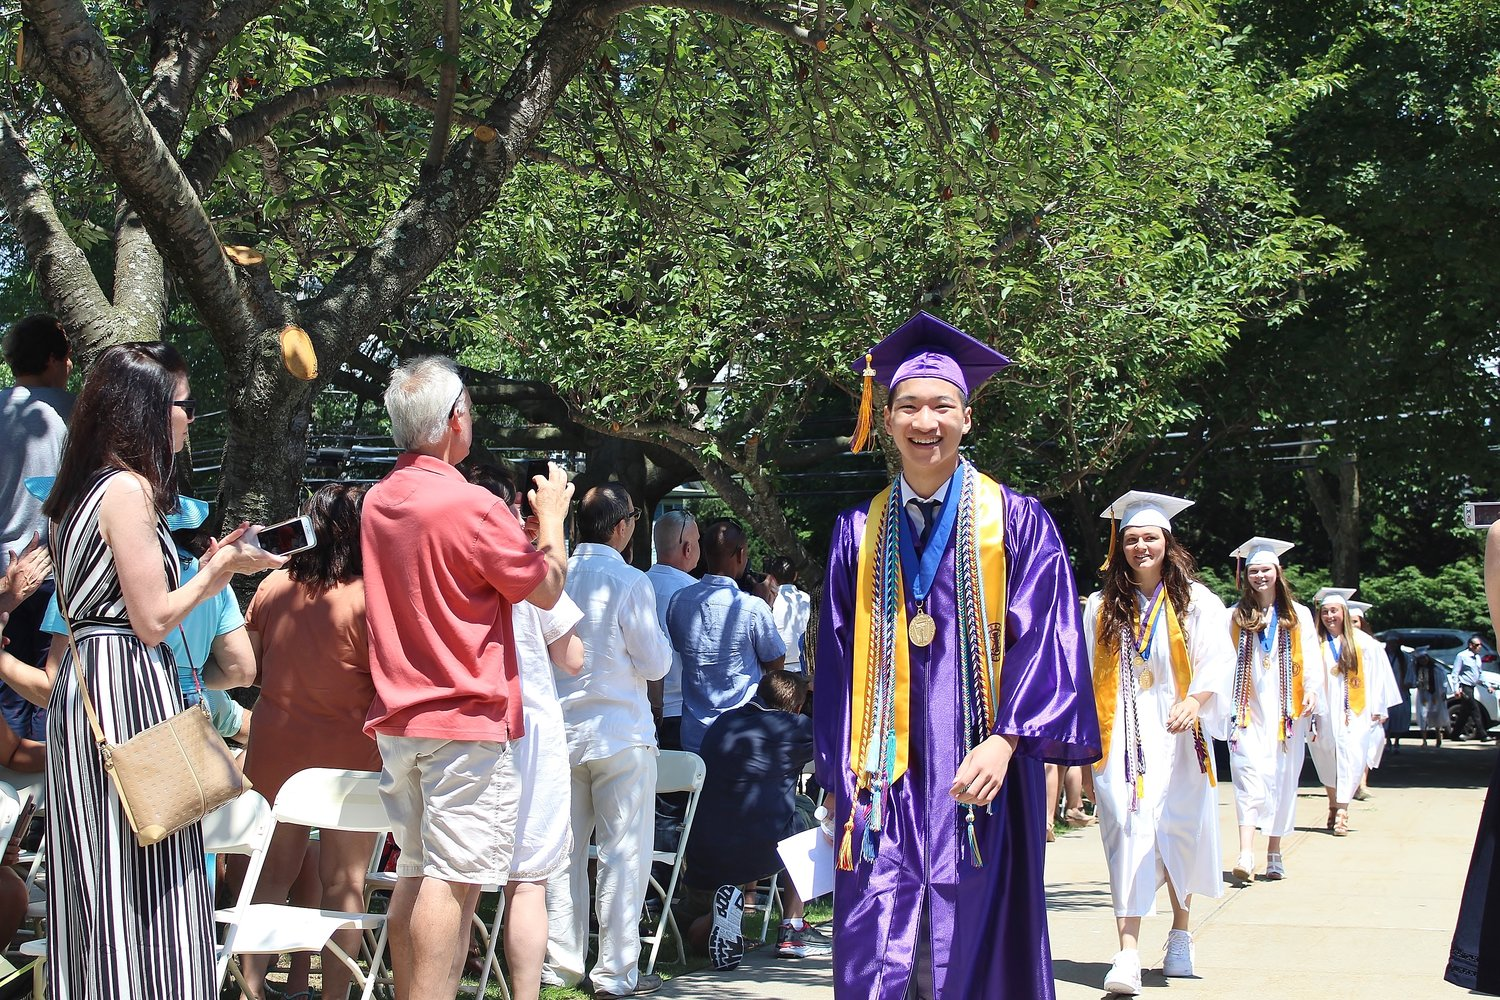 It was a big day for valedictorian Jason Hom who led the graduation procession.